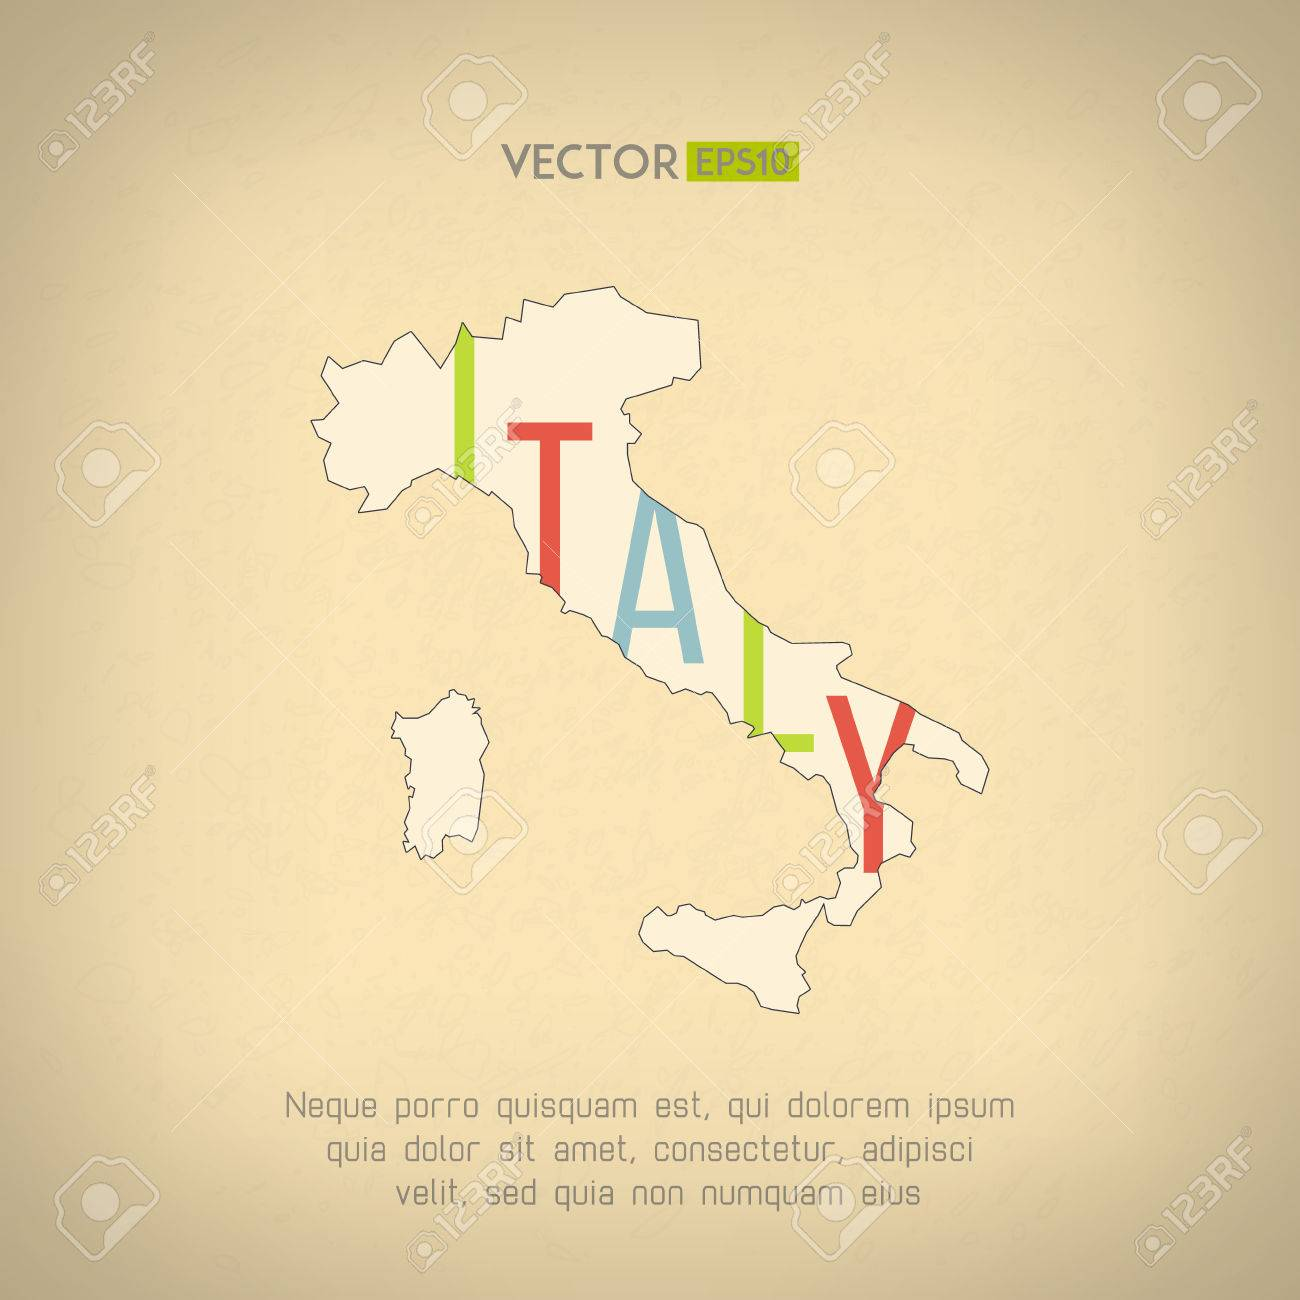 Vector italy map in vintage design  Italian border on grunge